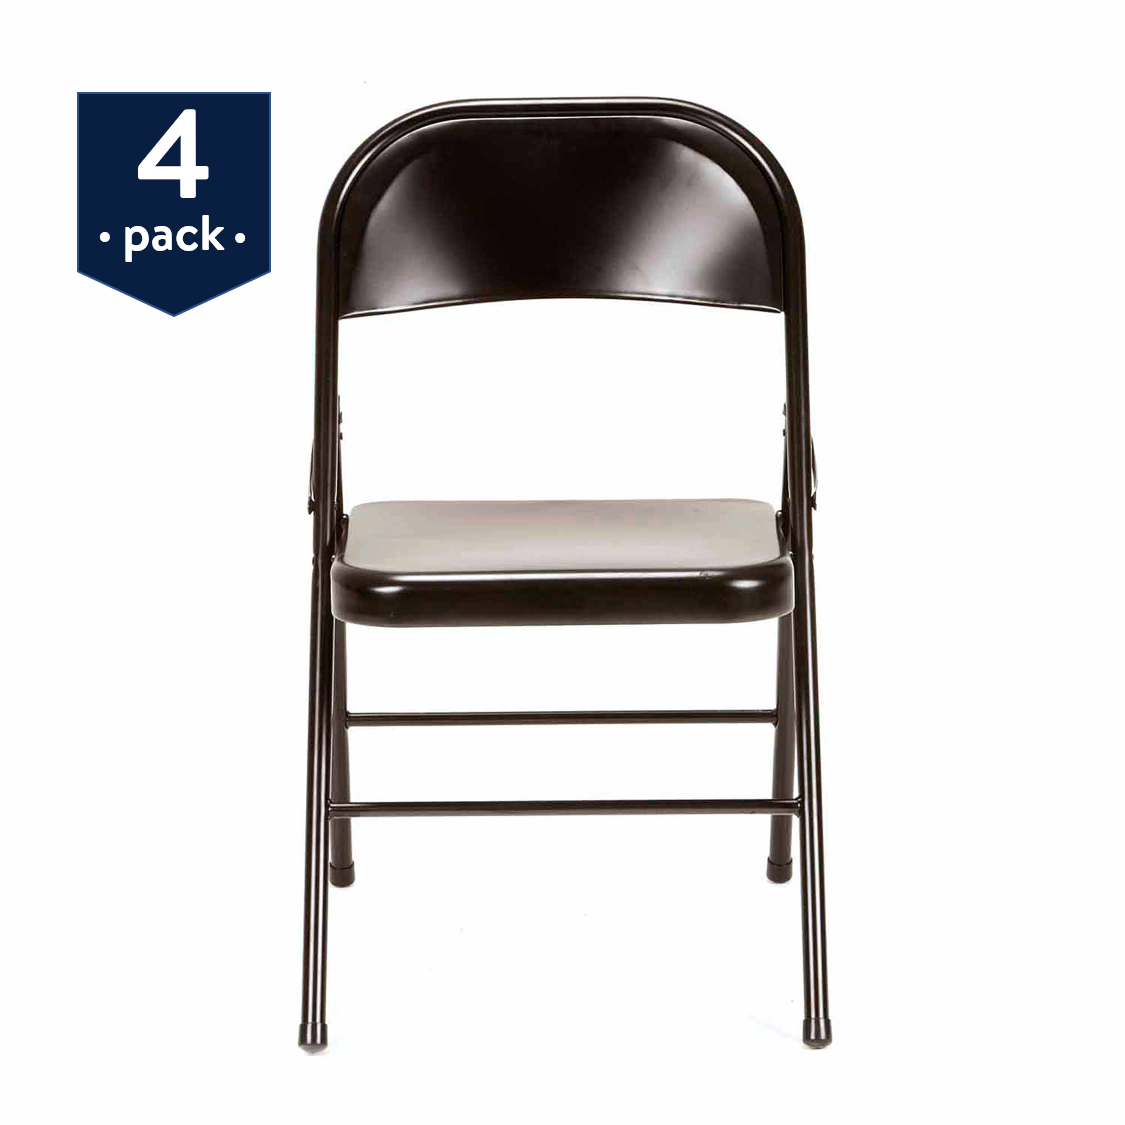 4 Pack Folding Chairs.Details About Mainstays Steel Folding Chair Black 4 Pack